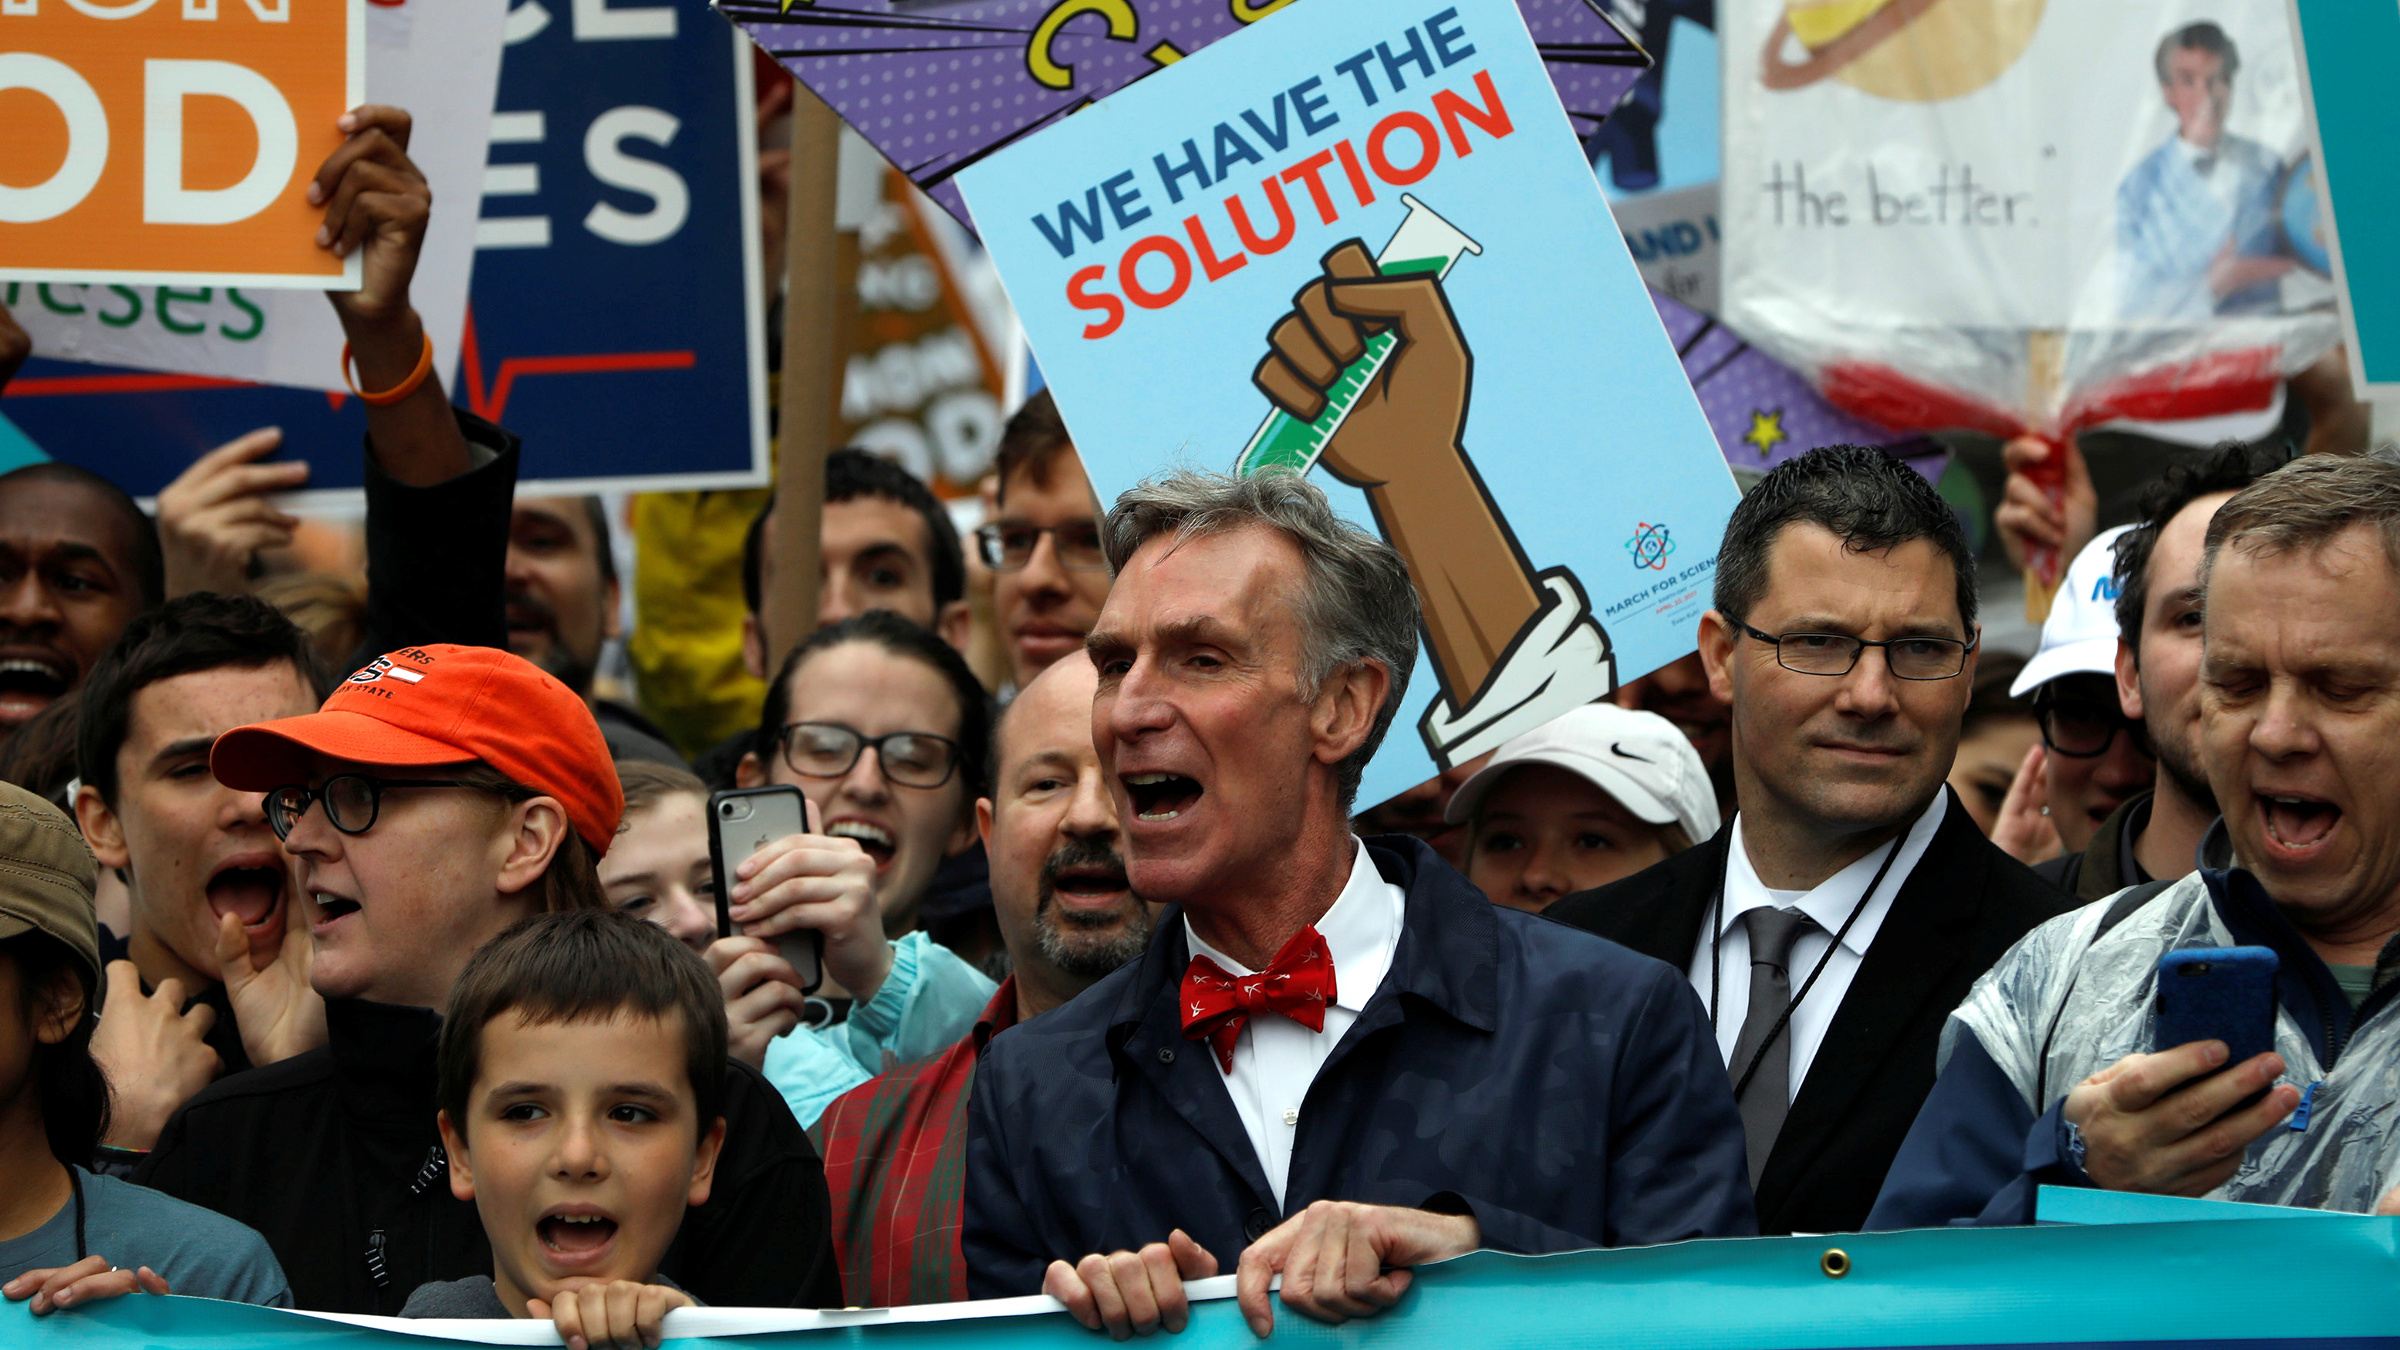 Bill Nye leads demonstrators on a march to the U.S. Capitol during the March for Science in Washington, U.S., April 22, 2017.